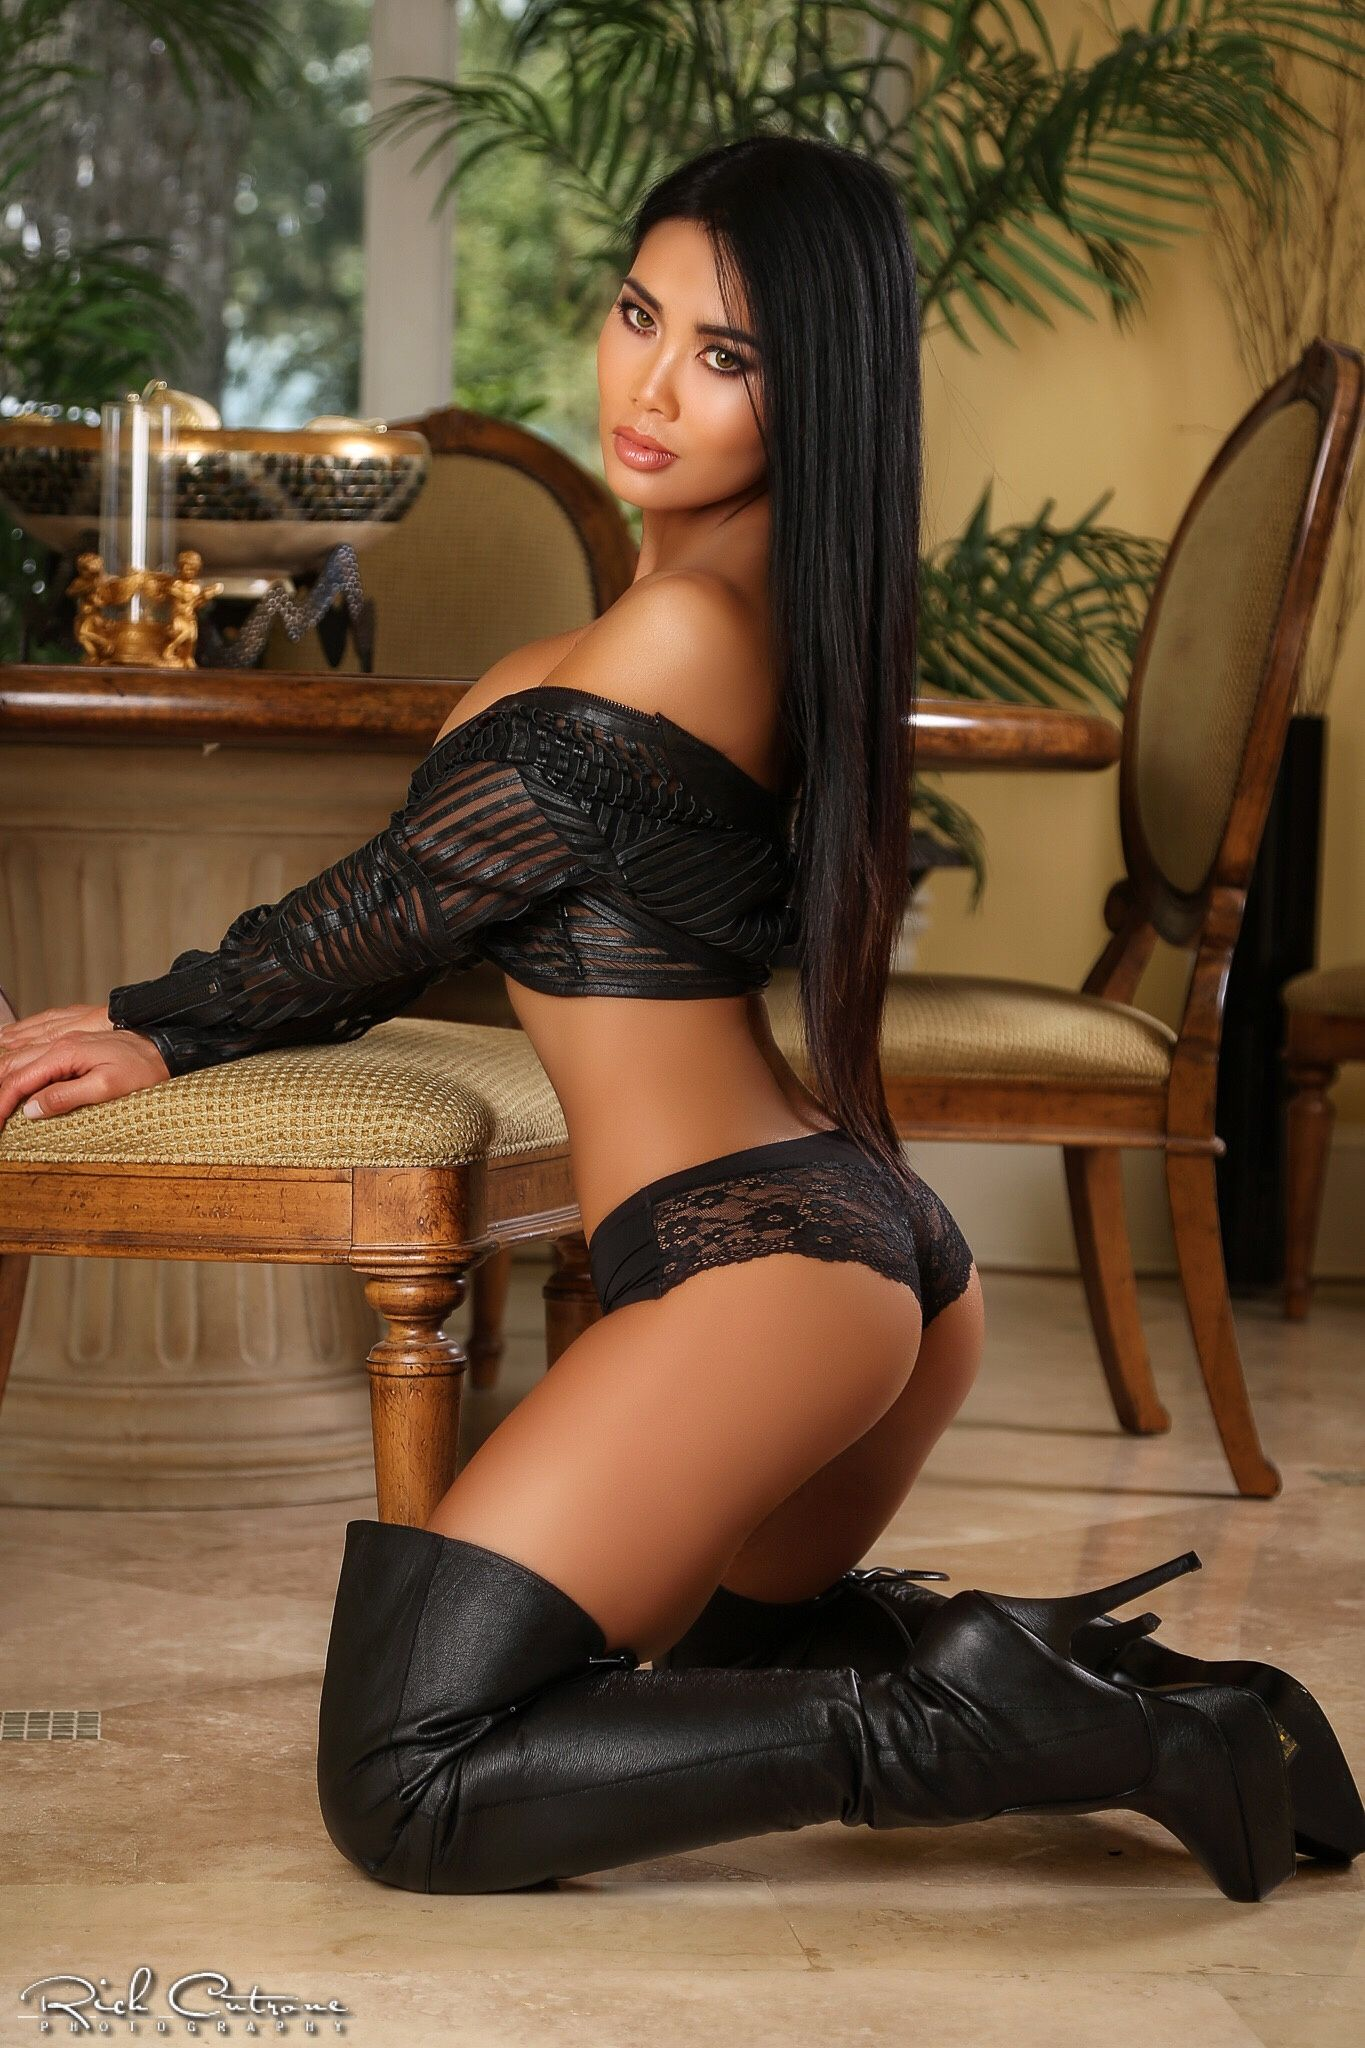 cf11f8256461 Get free lingerie at http   www.kinky-lingerie.co.